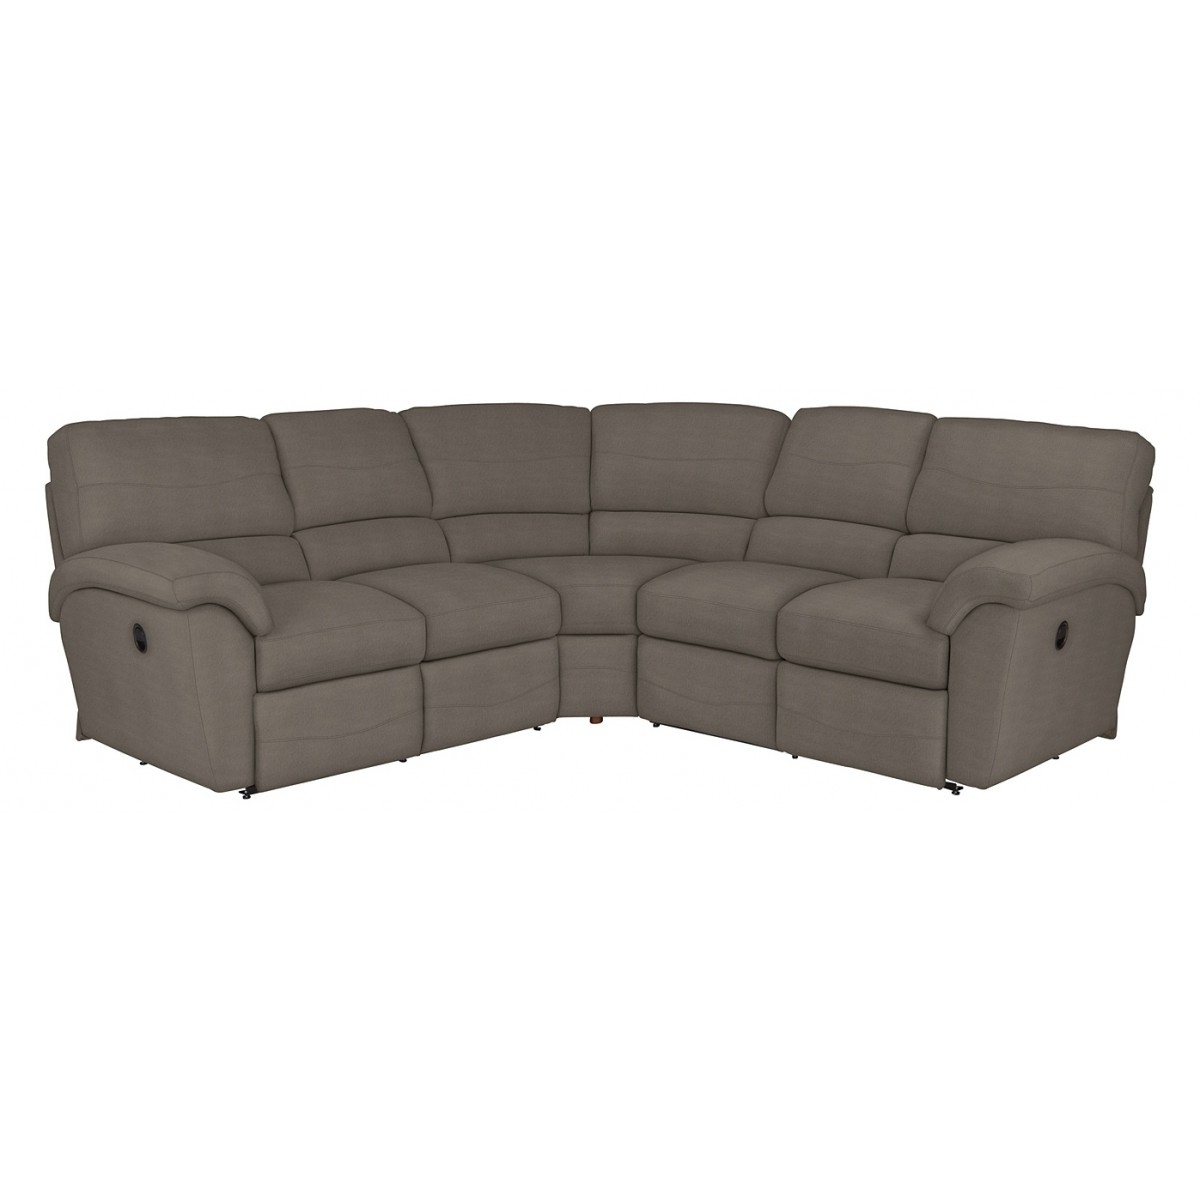 Z Boy Reese Reclining Sectional Throughout Well Liked Lazy Boy Sectional Sofas (View 15 of 15)